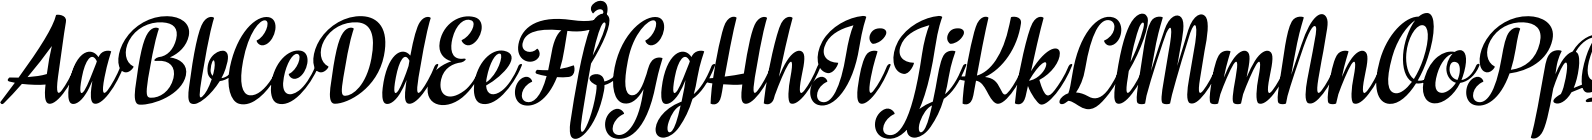 In And Out Regular Italic Font